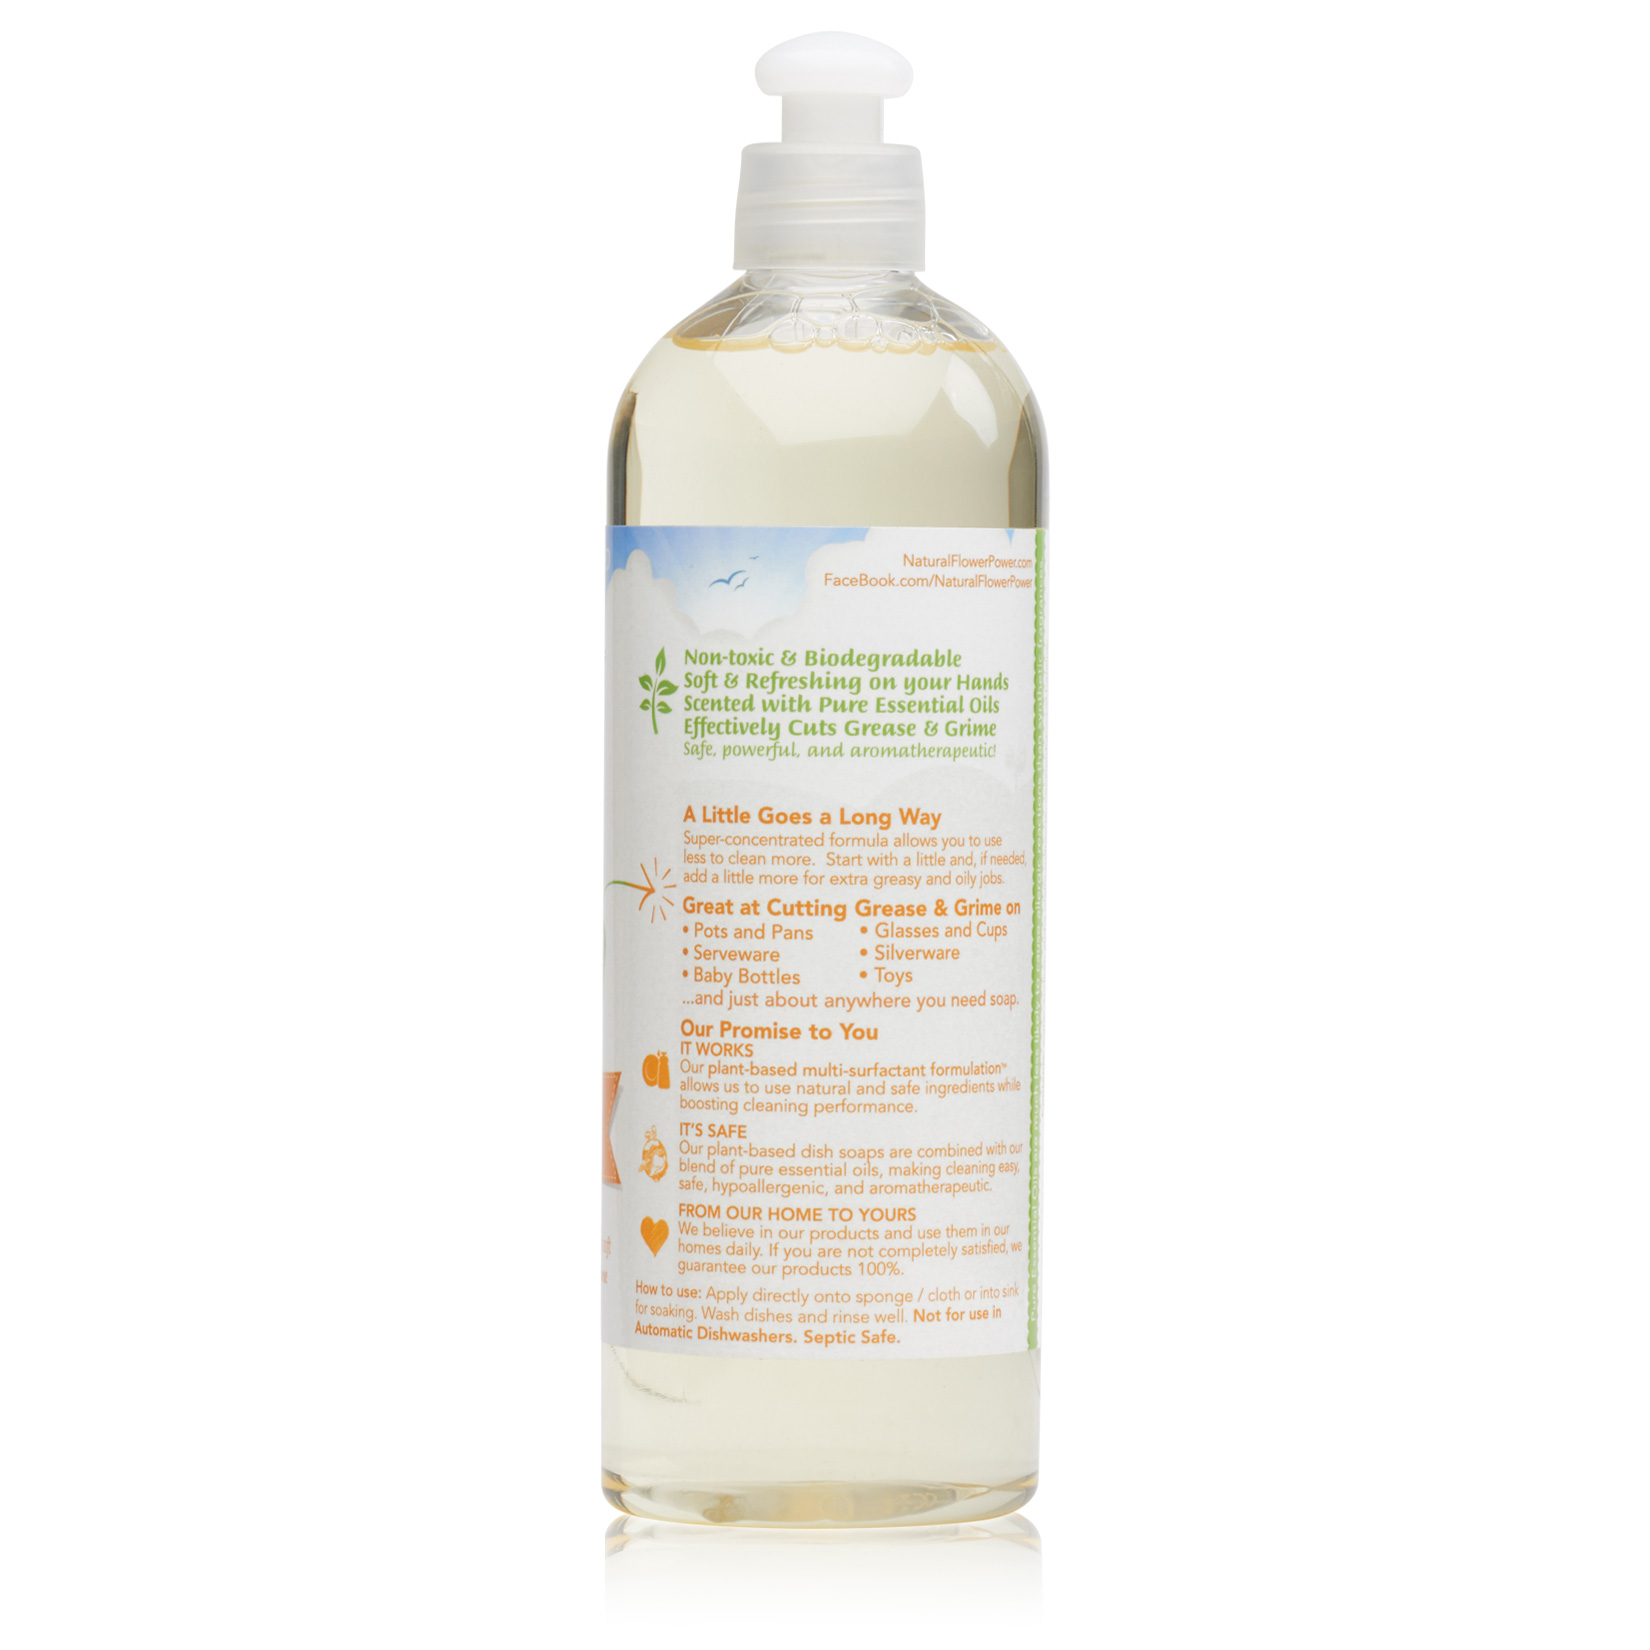 Natural Dish Soap Citrus & Spice – Back